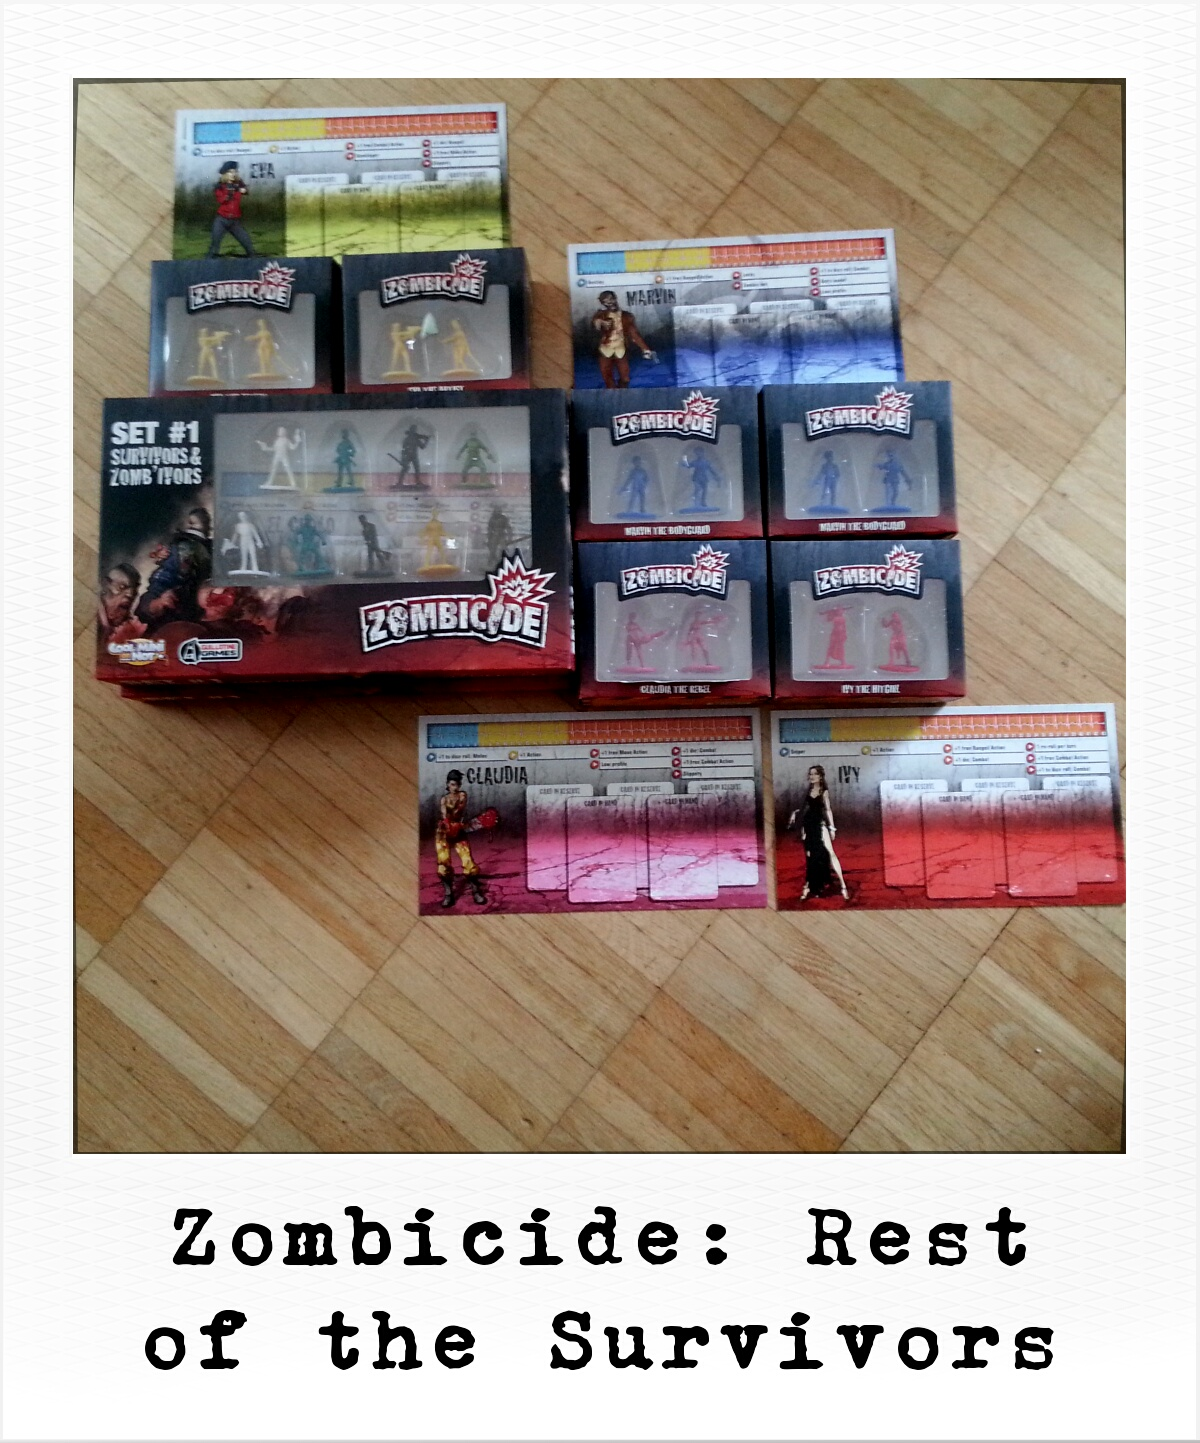 Zombicide: Rest of the Survivors (Privates Foto)